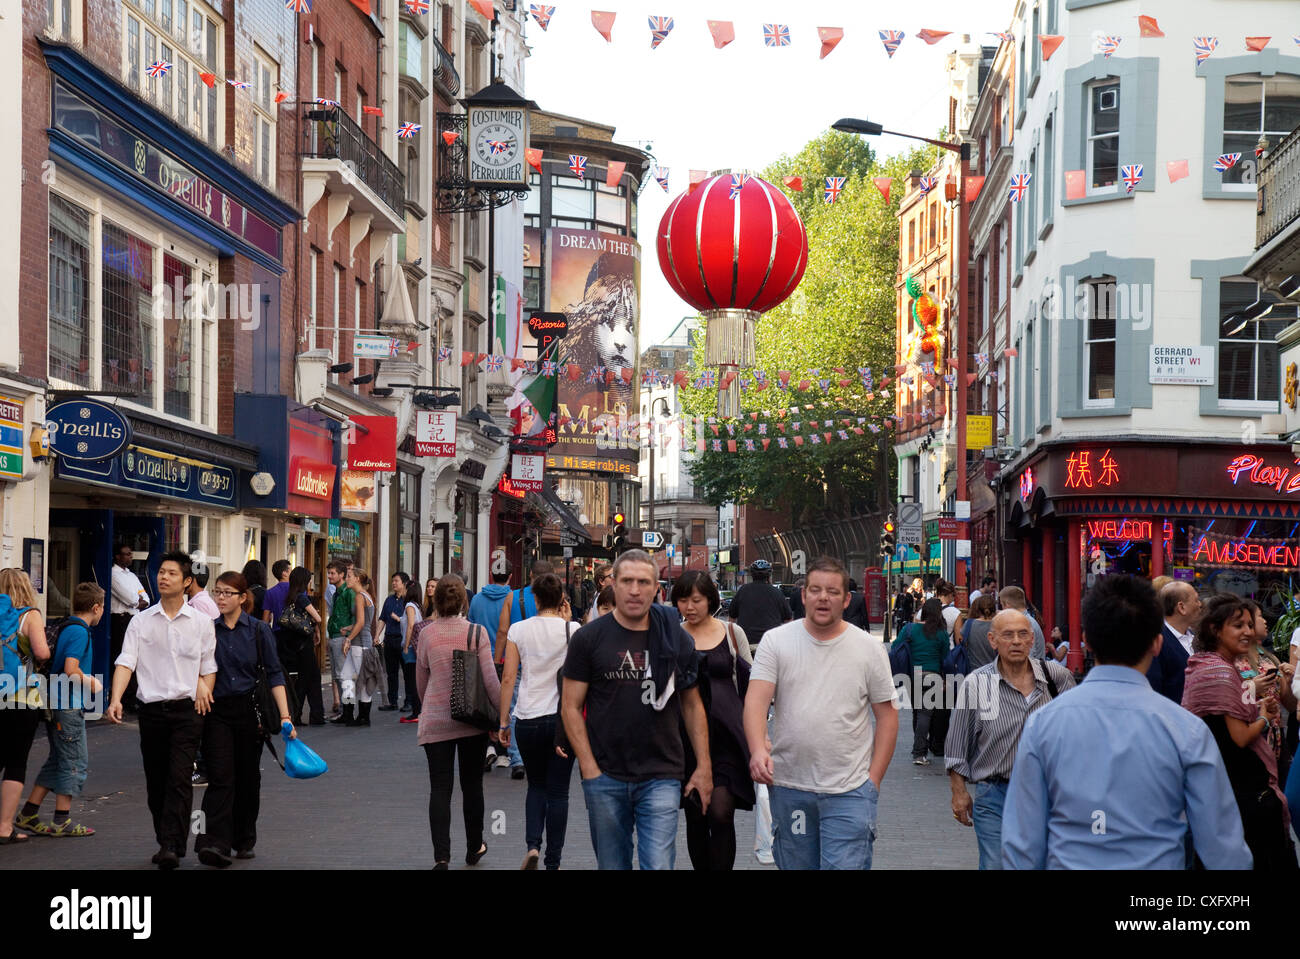 Wardour Street scene, Chinatown London W1 UK Europe Stock Photo